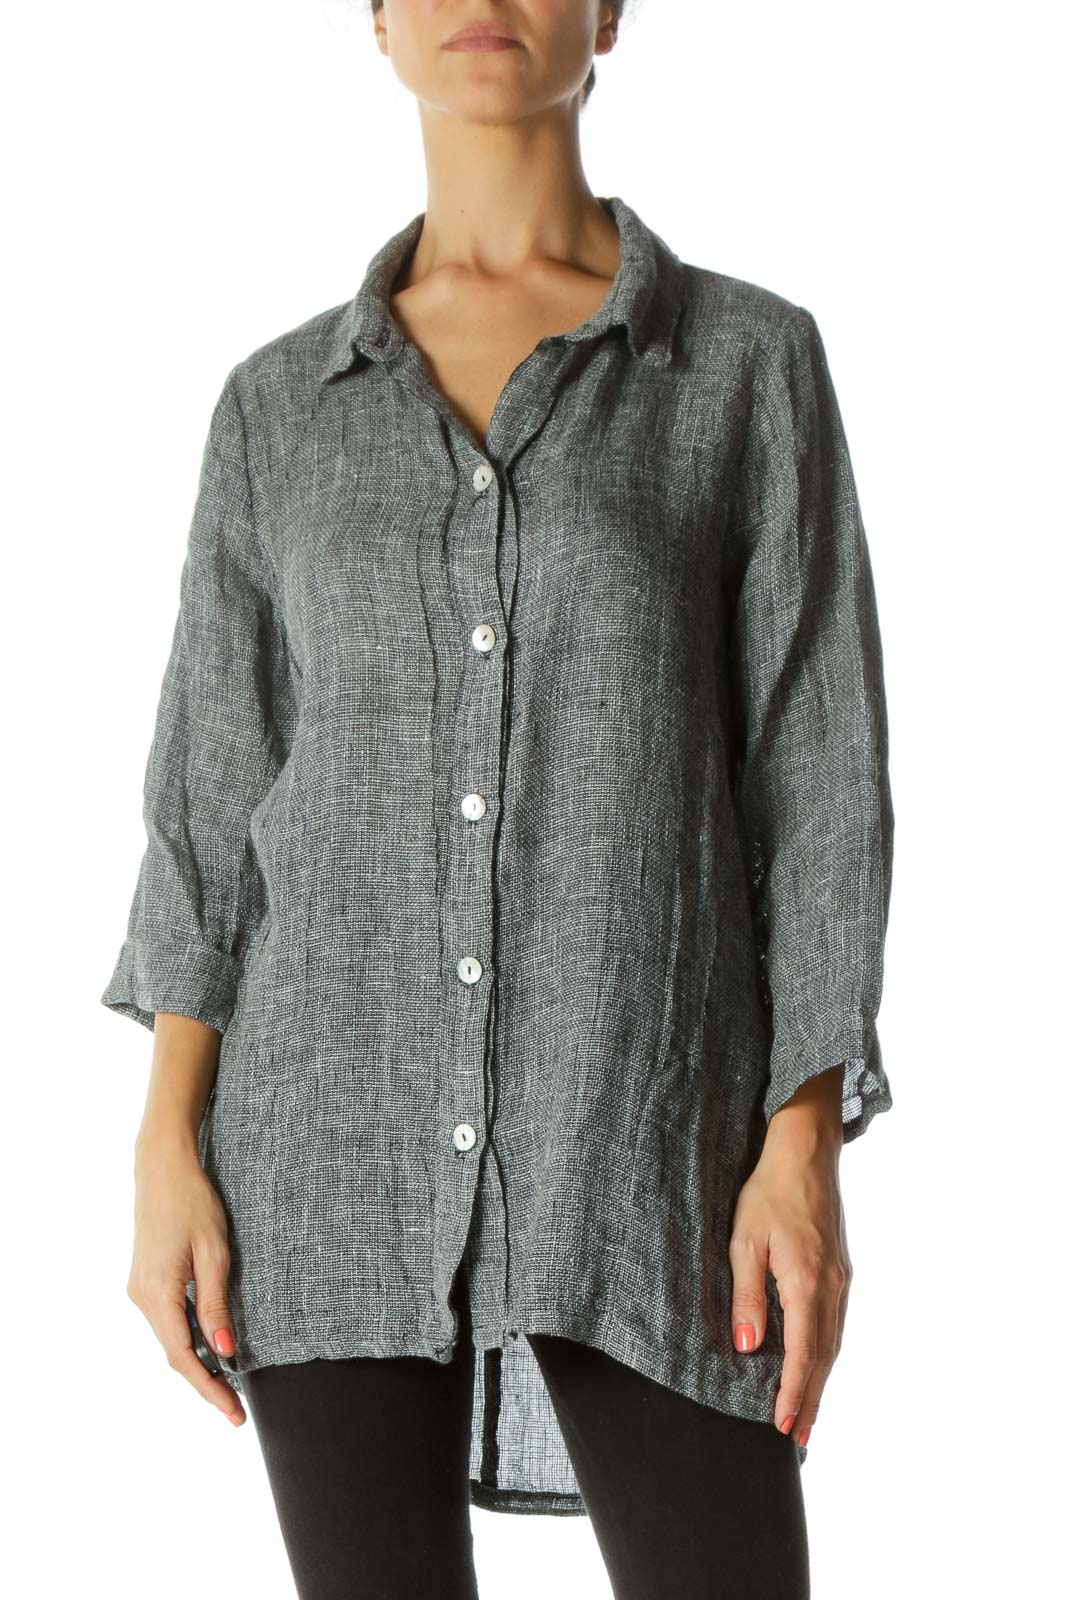 Gray Over Sized Knit Top